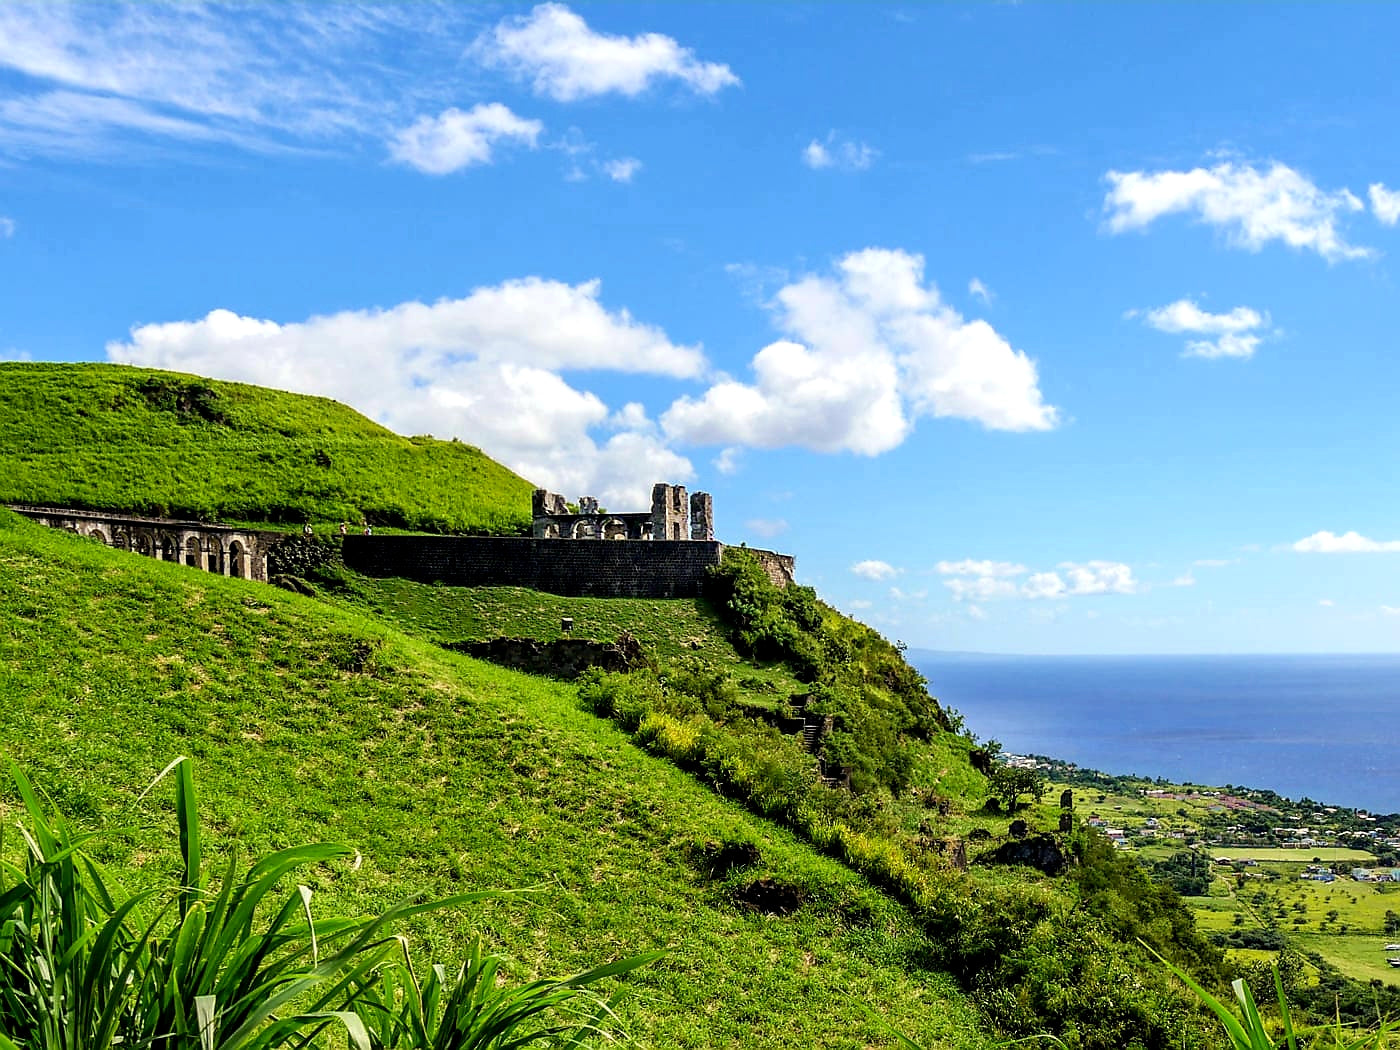 Australian Cricket Tours - Brimstone Hill Fortress, St Kitts